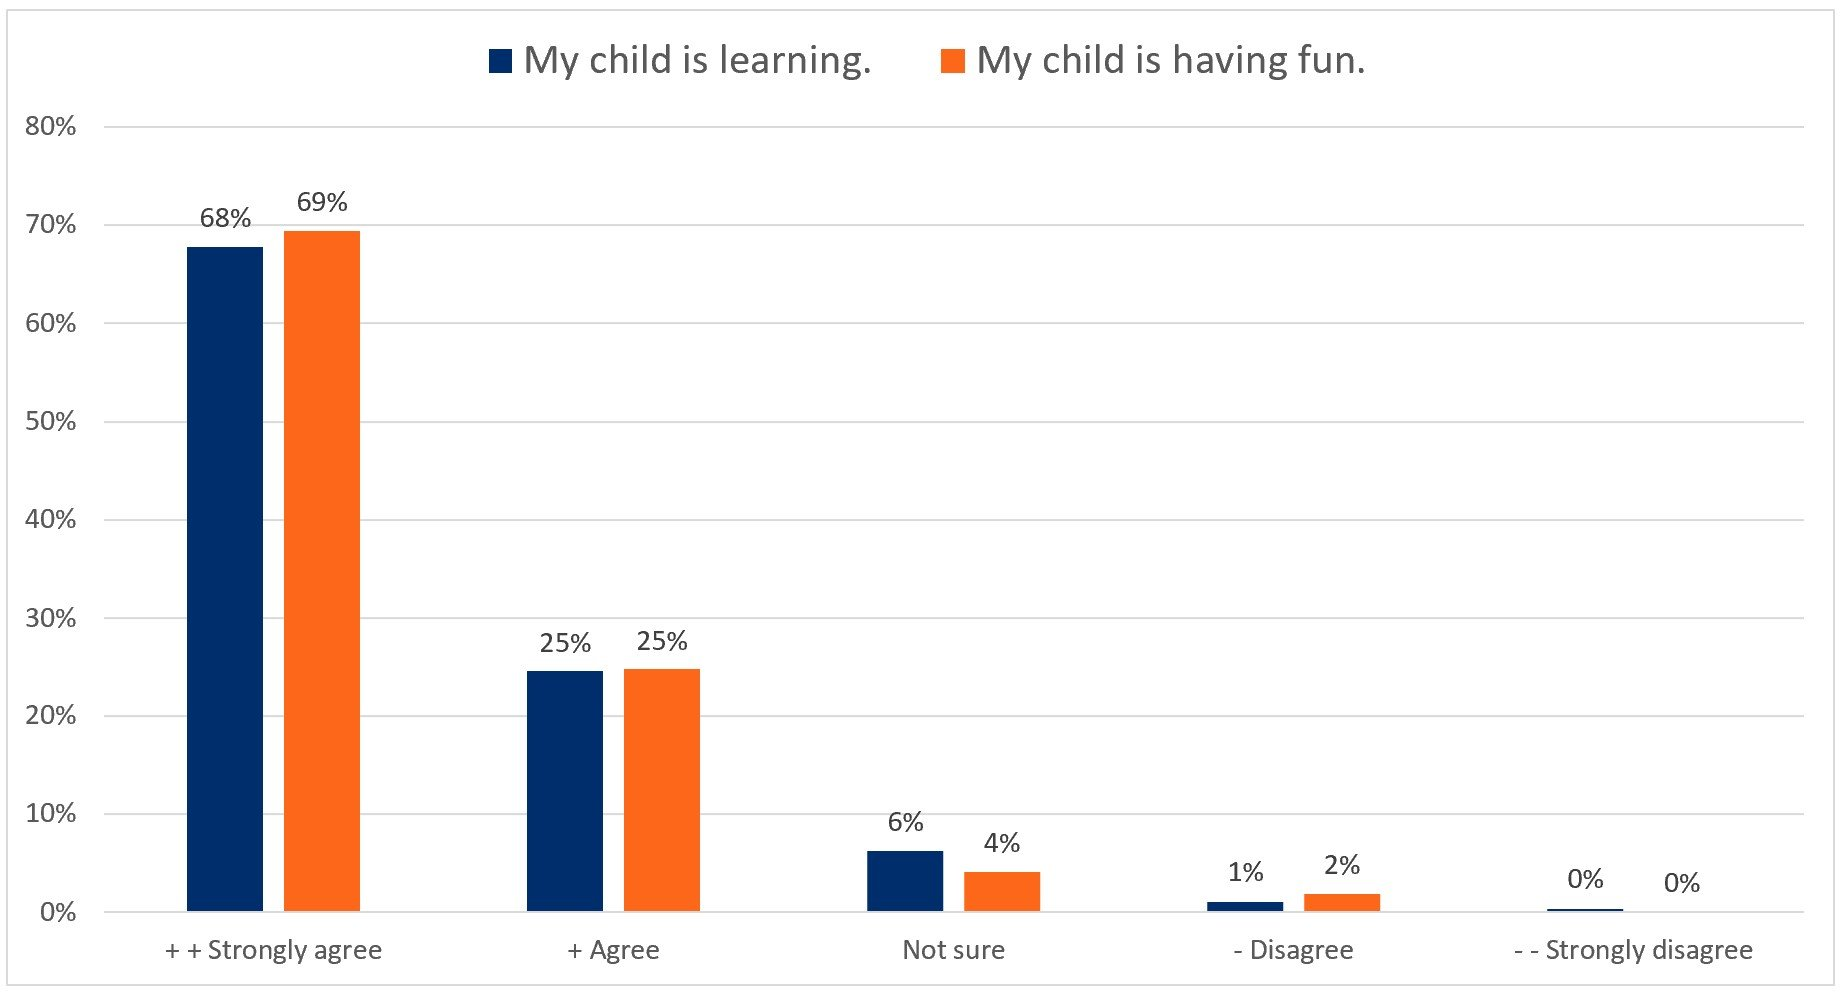 Customer Satisfaction Survey Results Summary Learning and Having Fun